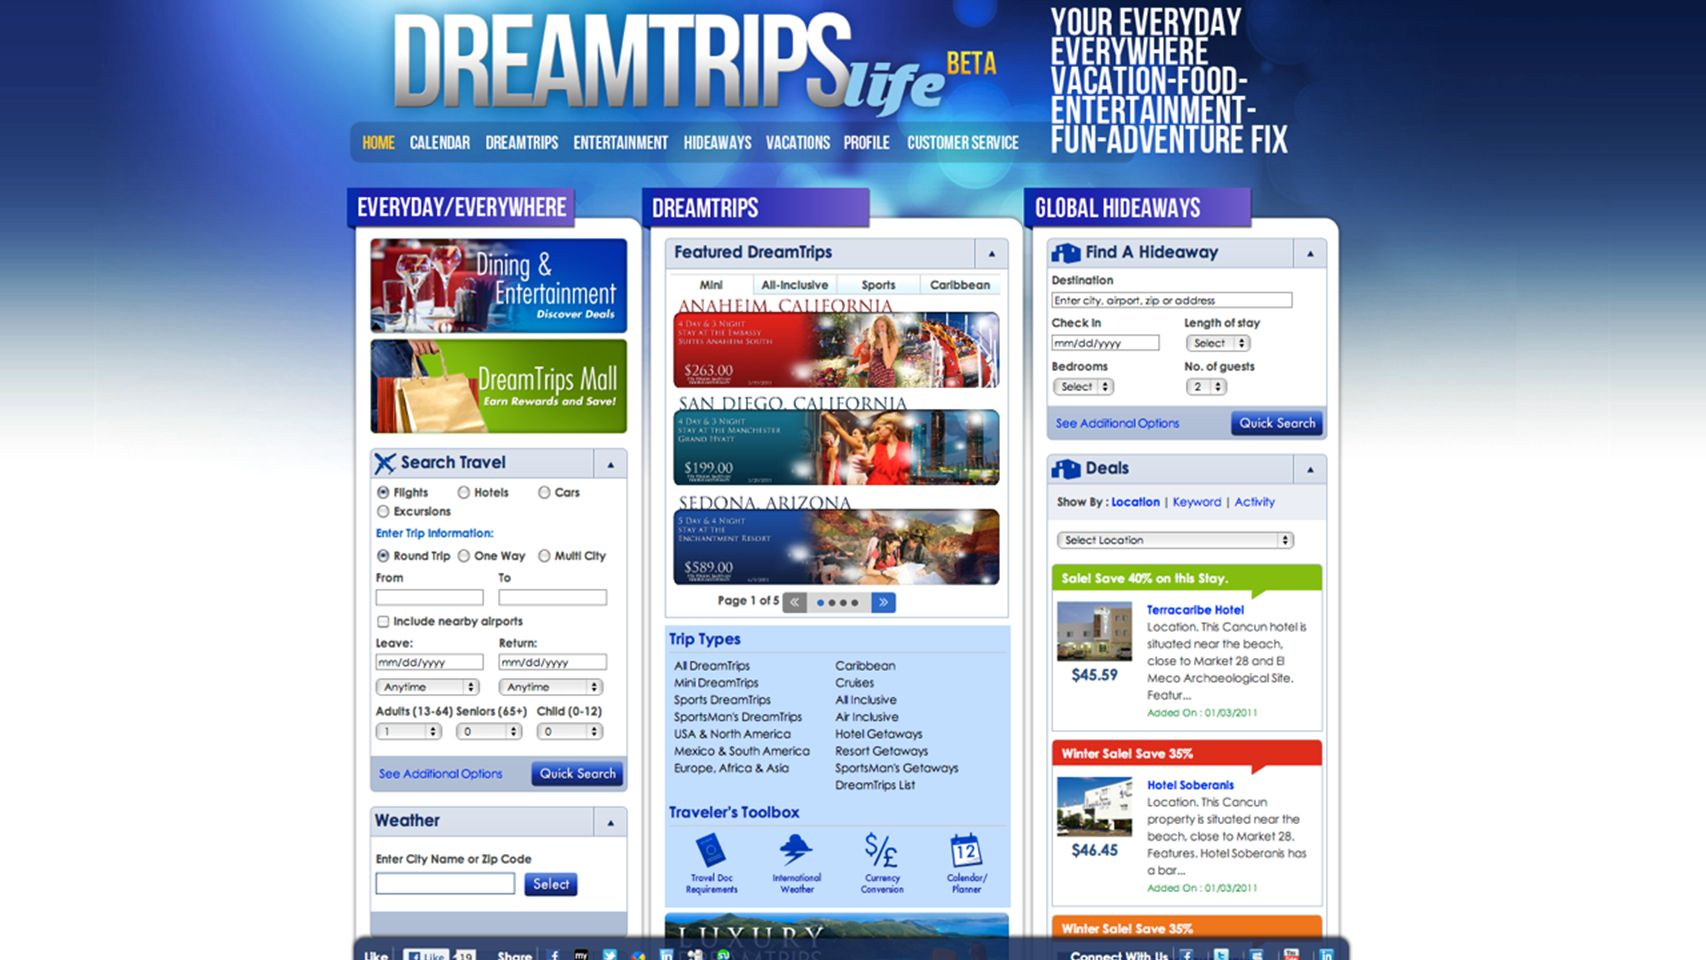 ©2011 WorldVentures Marketing, LLC DreamTrips Life Screen Shot 1